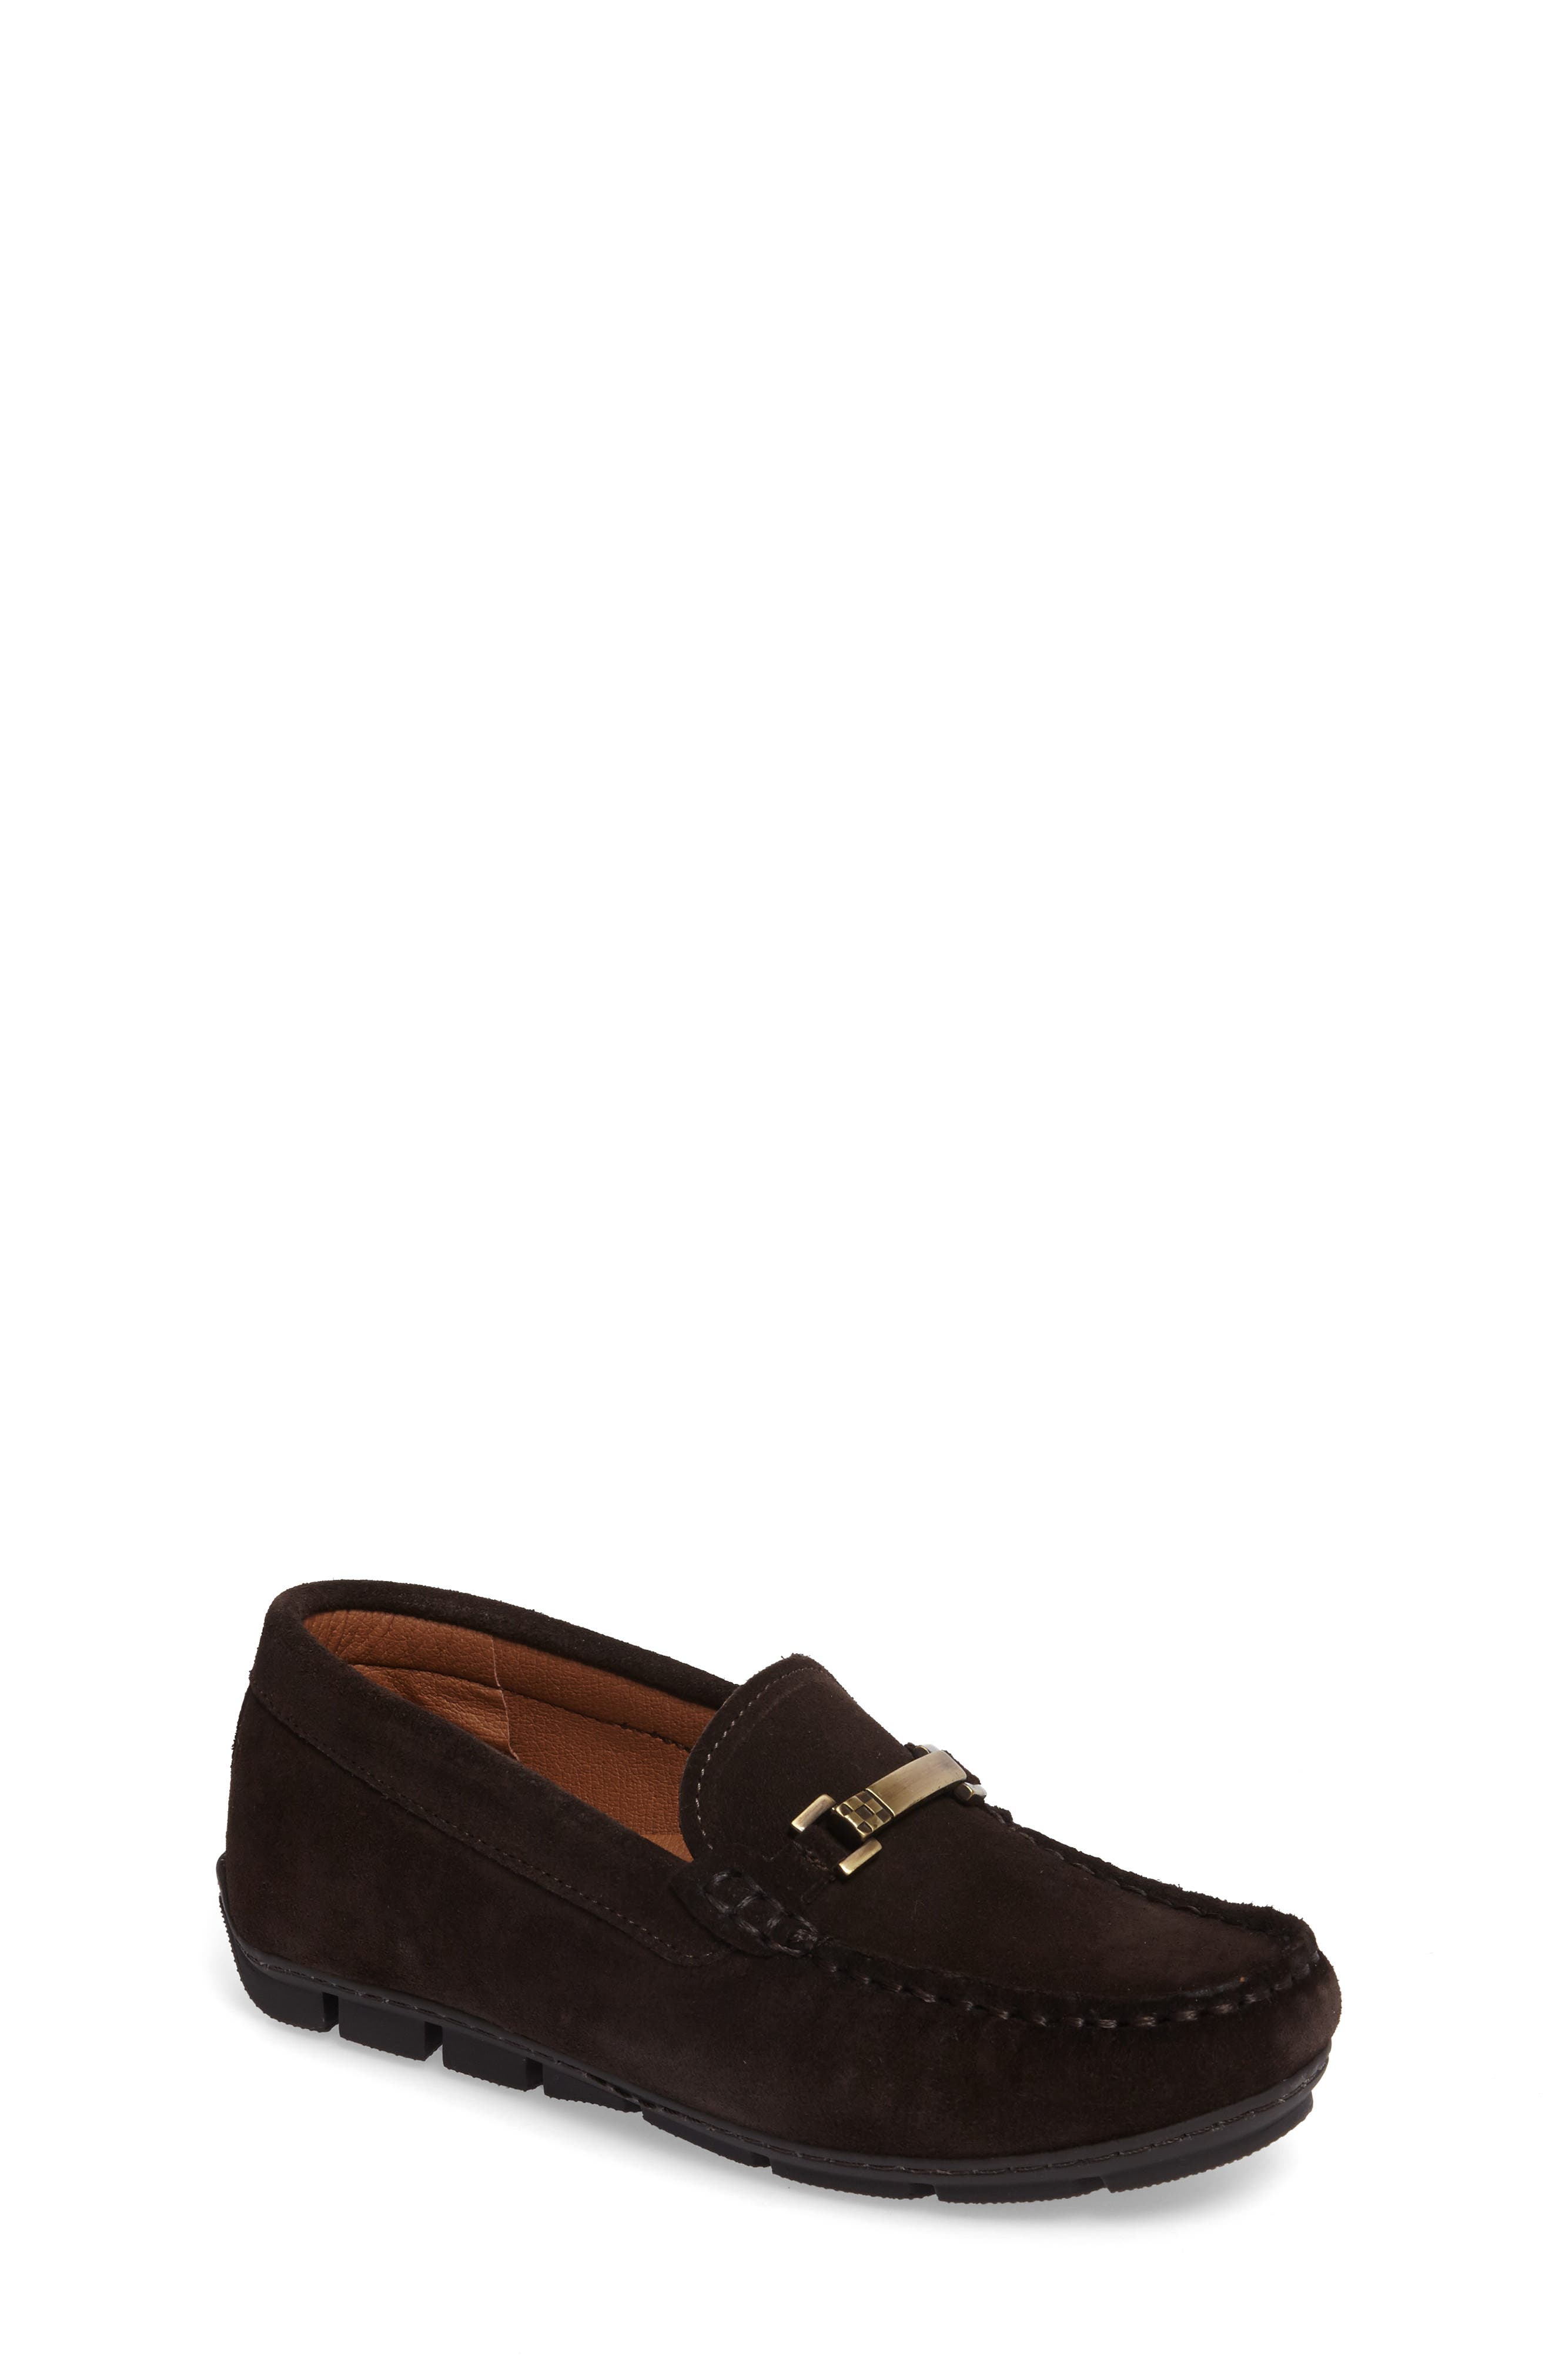 Vince Camuto Dante Loafer (Toddler, Little Kid & Big Kid)